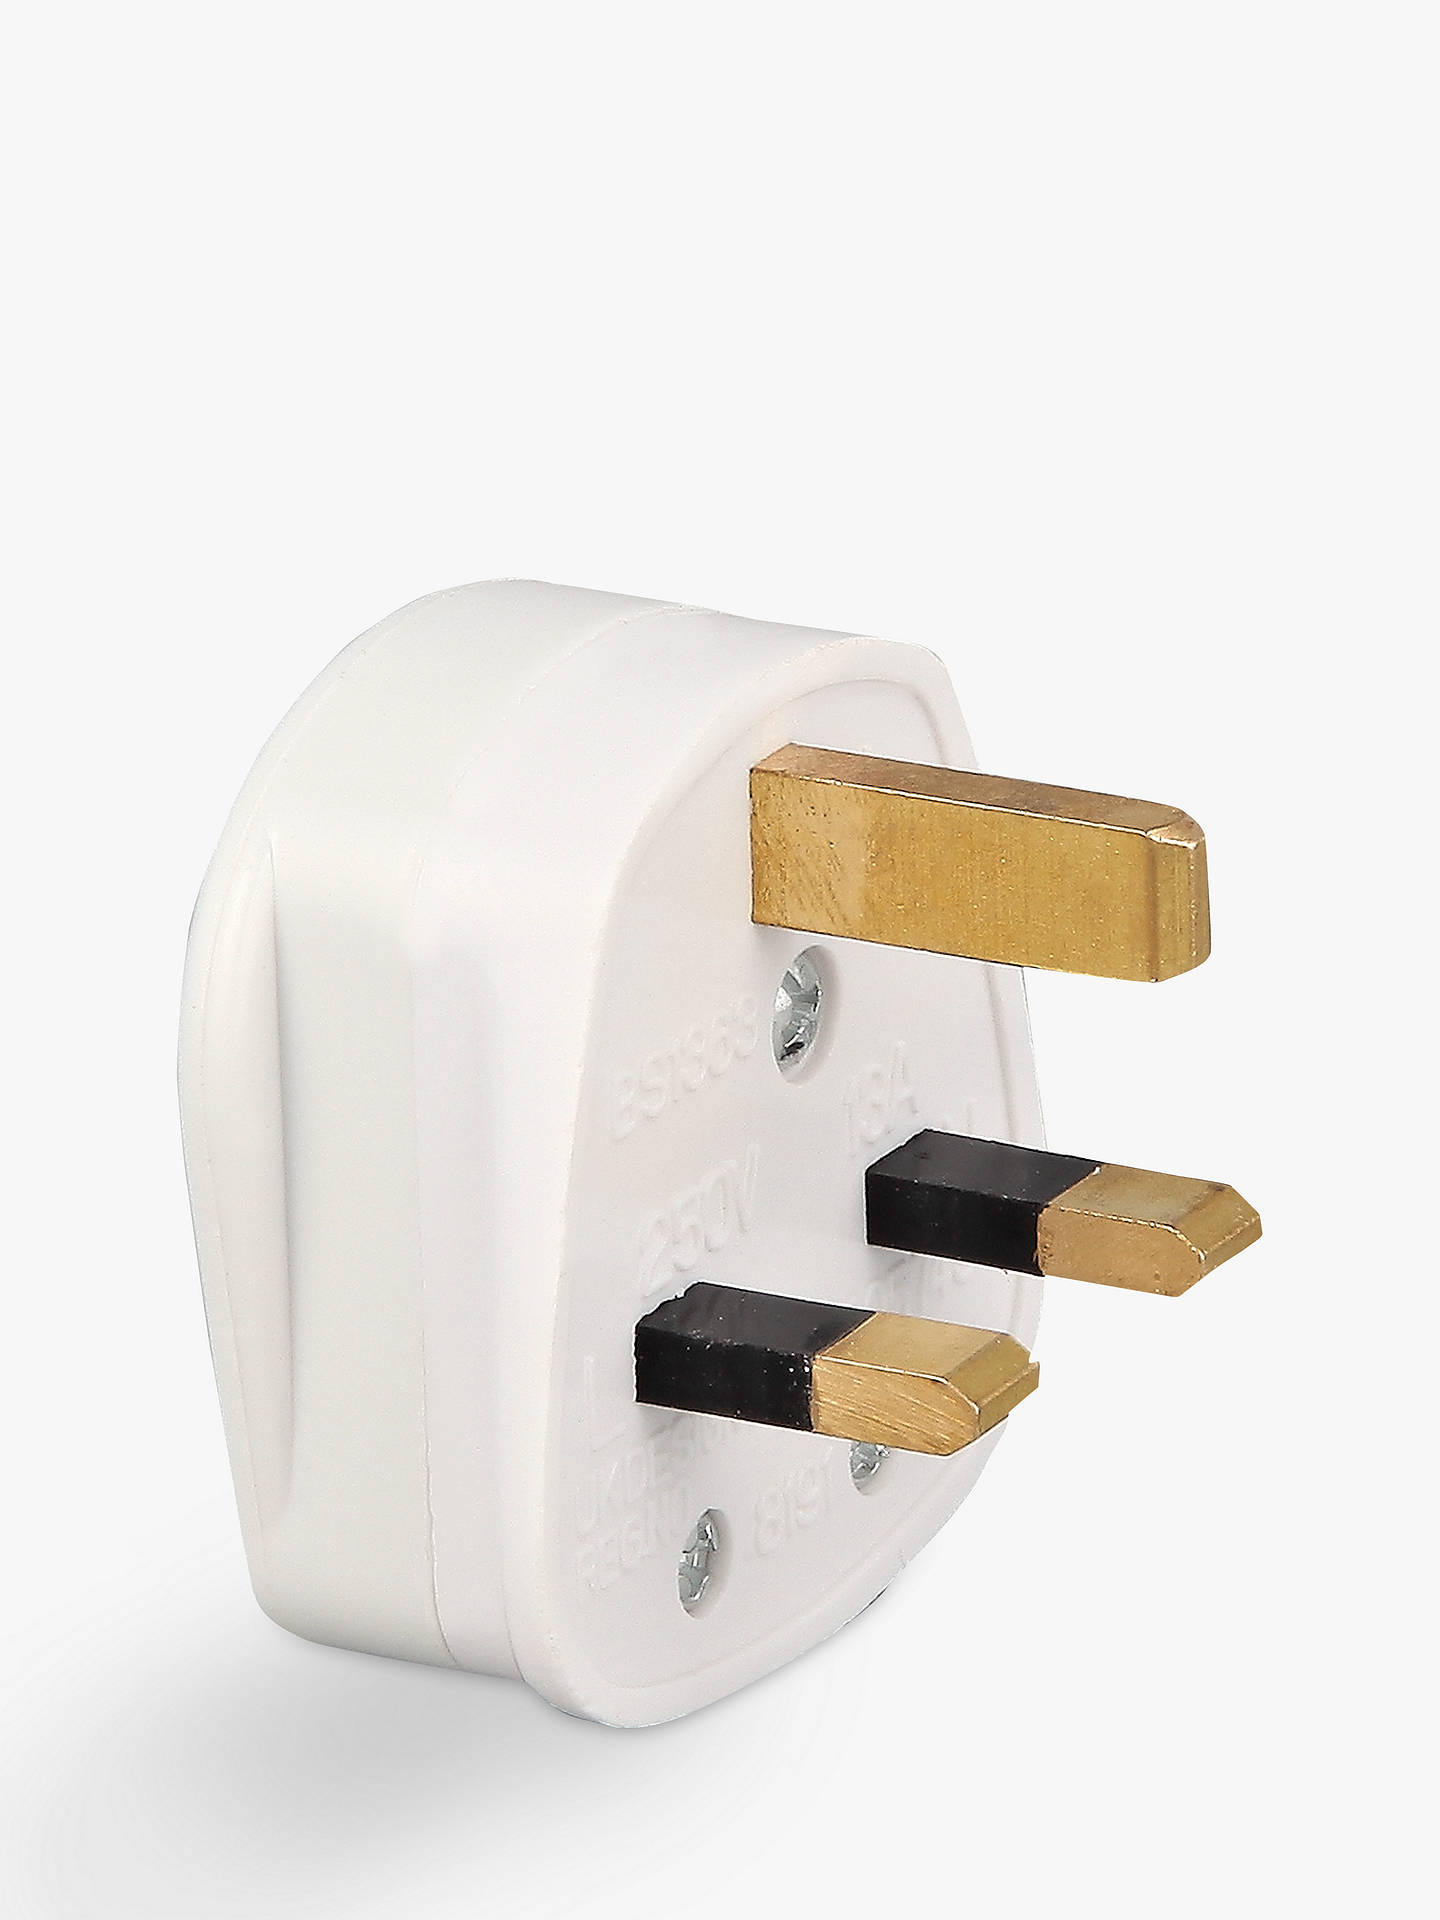 BuyJohn Lewis & Partners UK Plug, 3 Amp Online at johnlewis.com